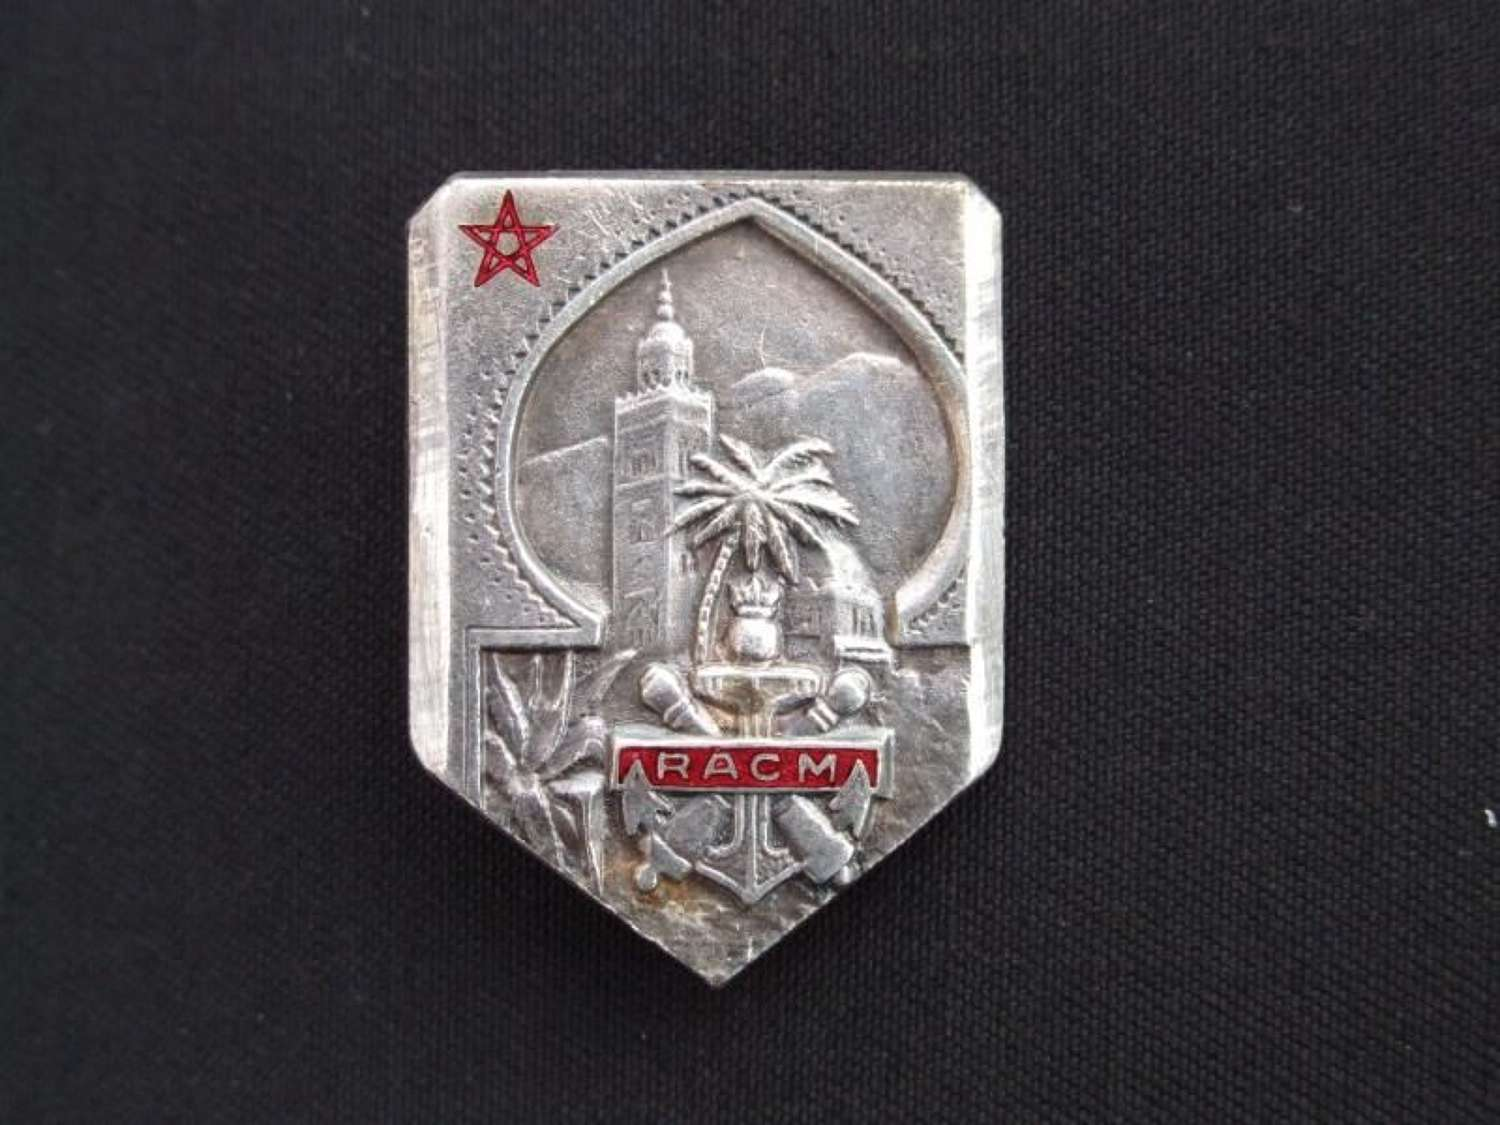 WW11 French Colonial Artillery Regiment of Morocco Badge